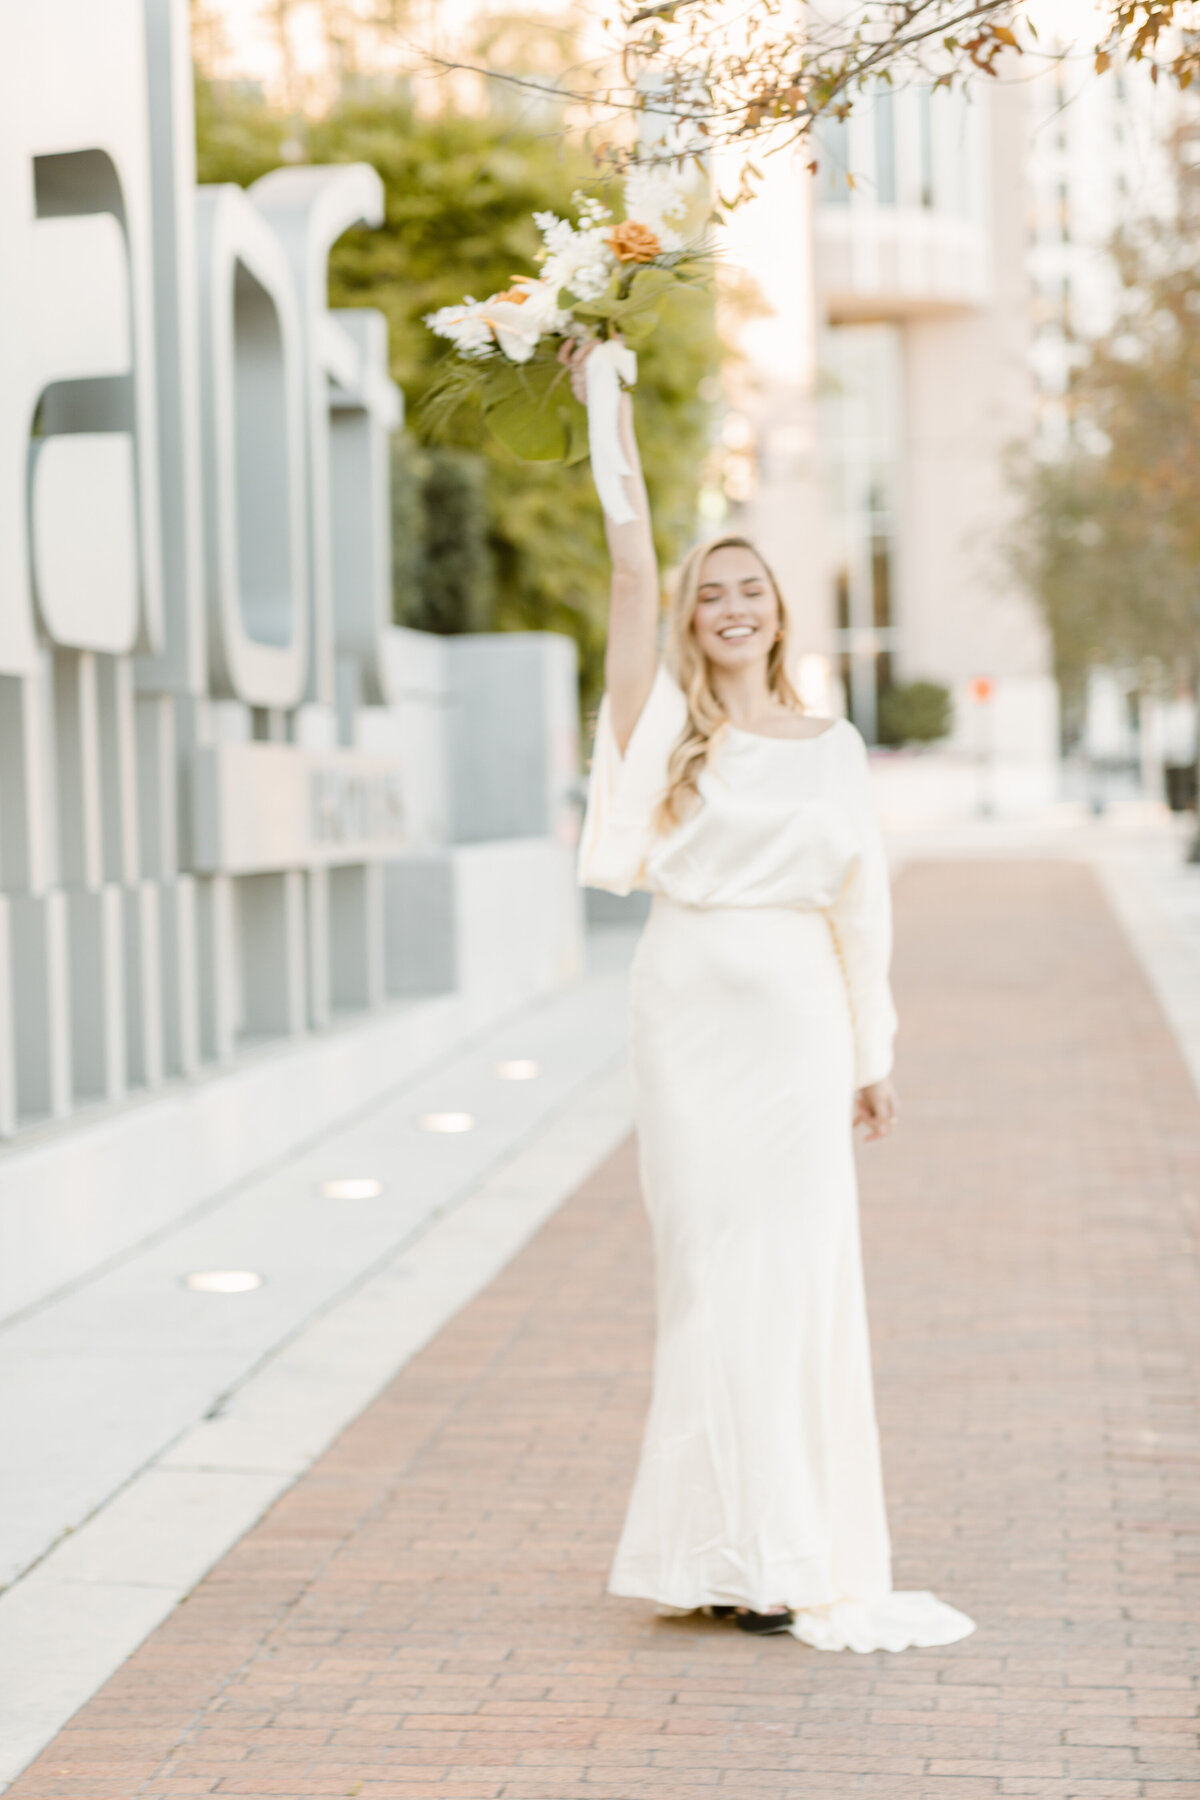 Orlando Bridal Portrait Photography 41